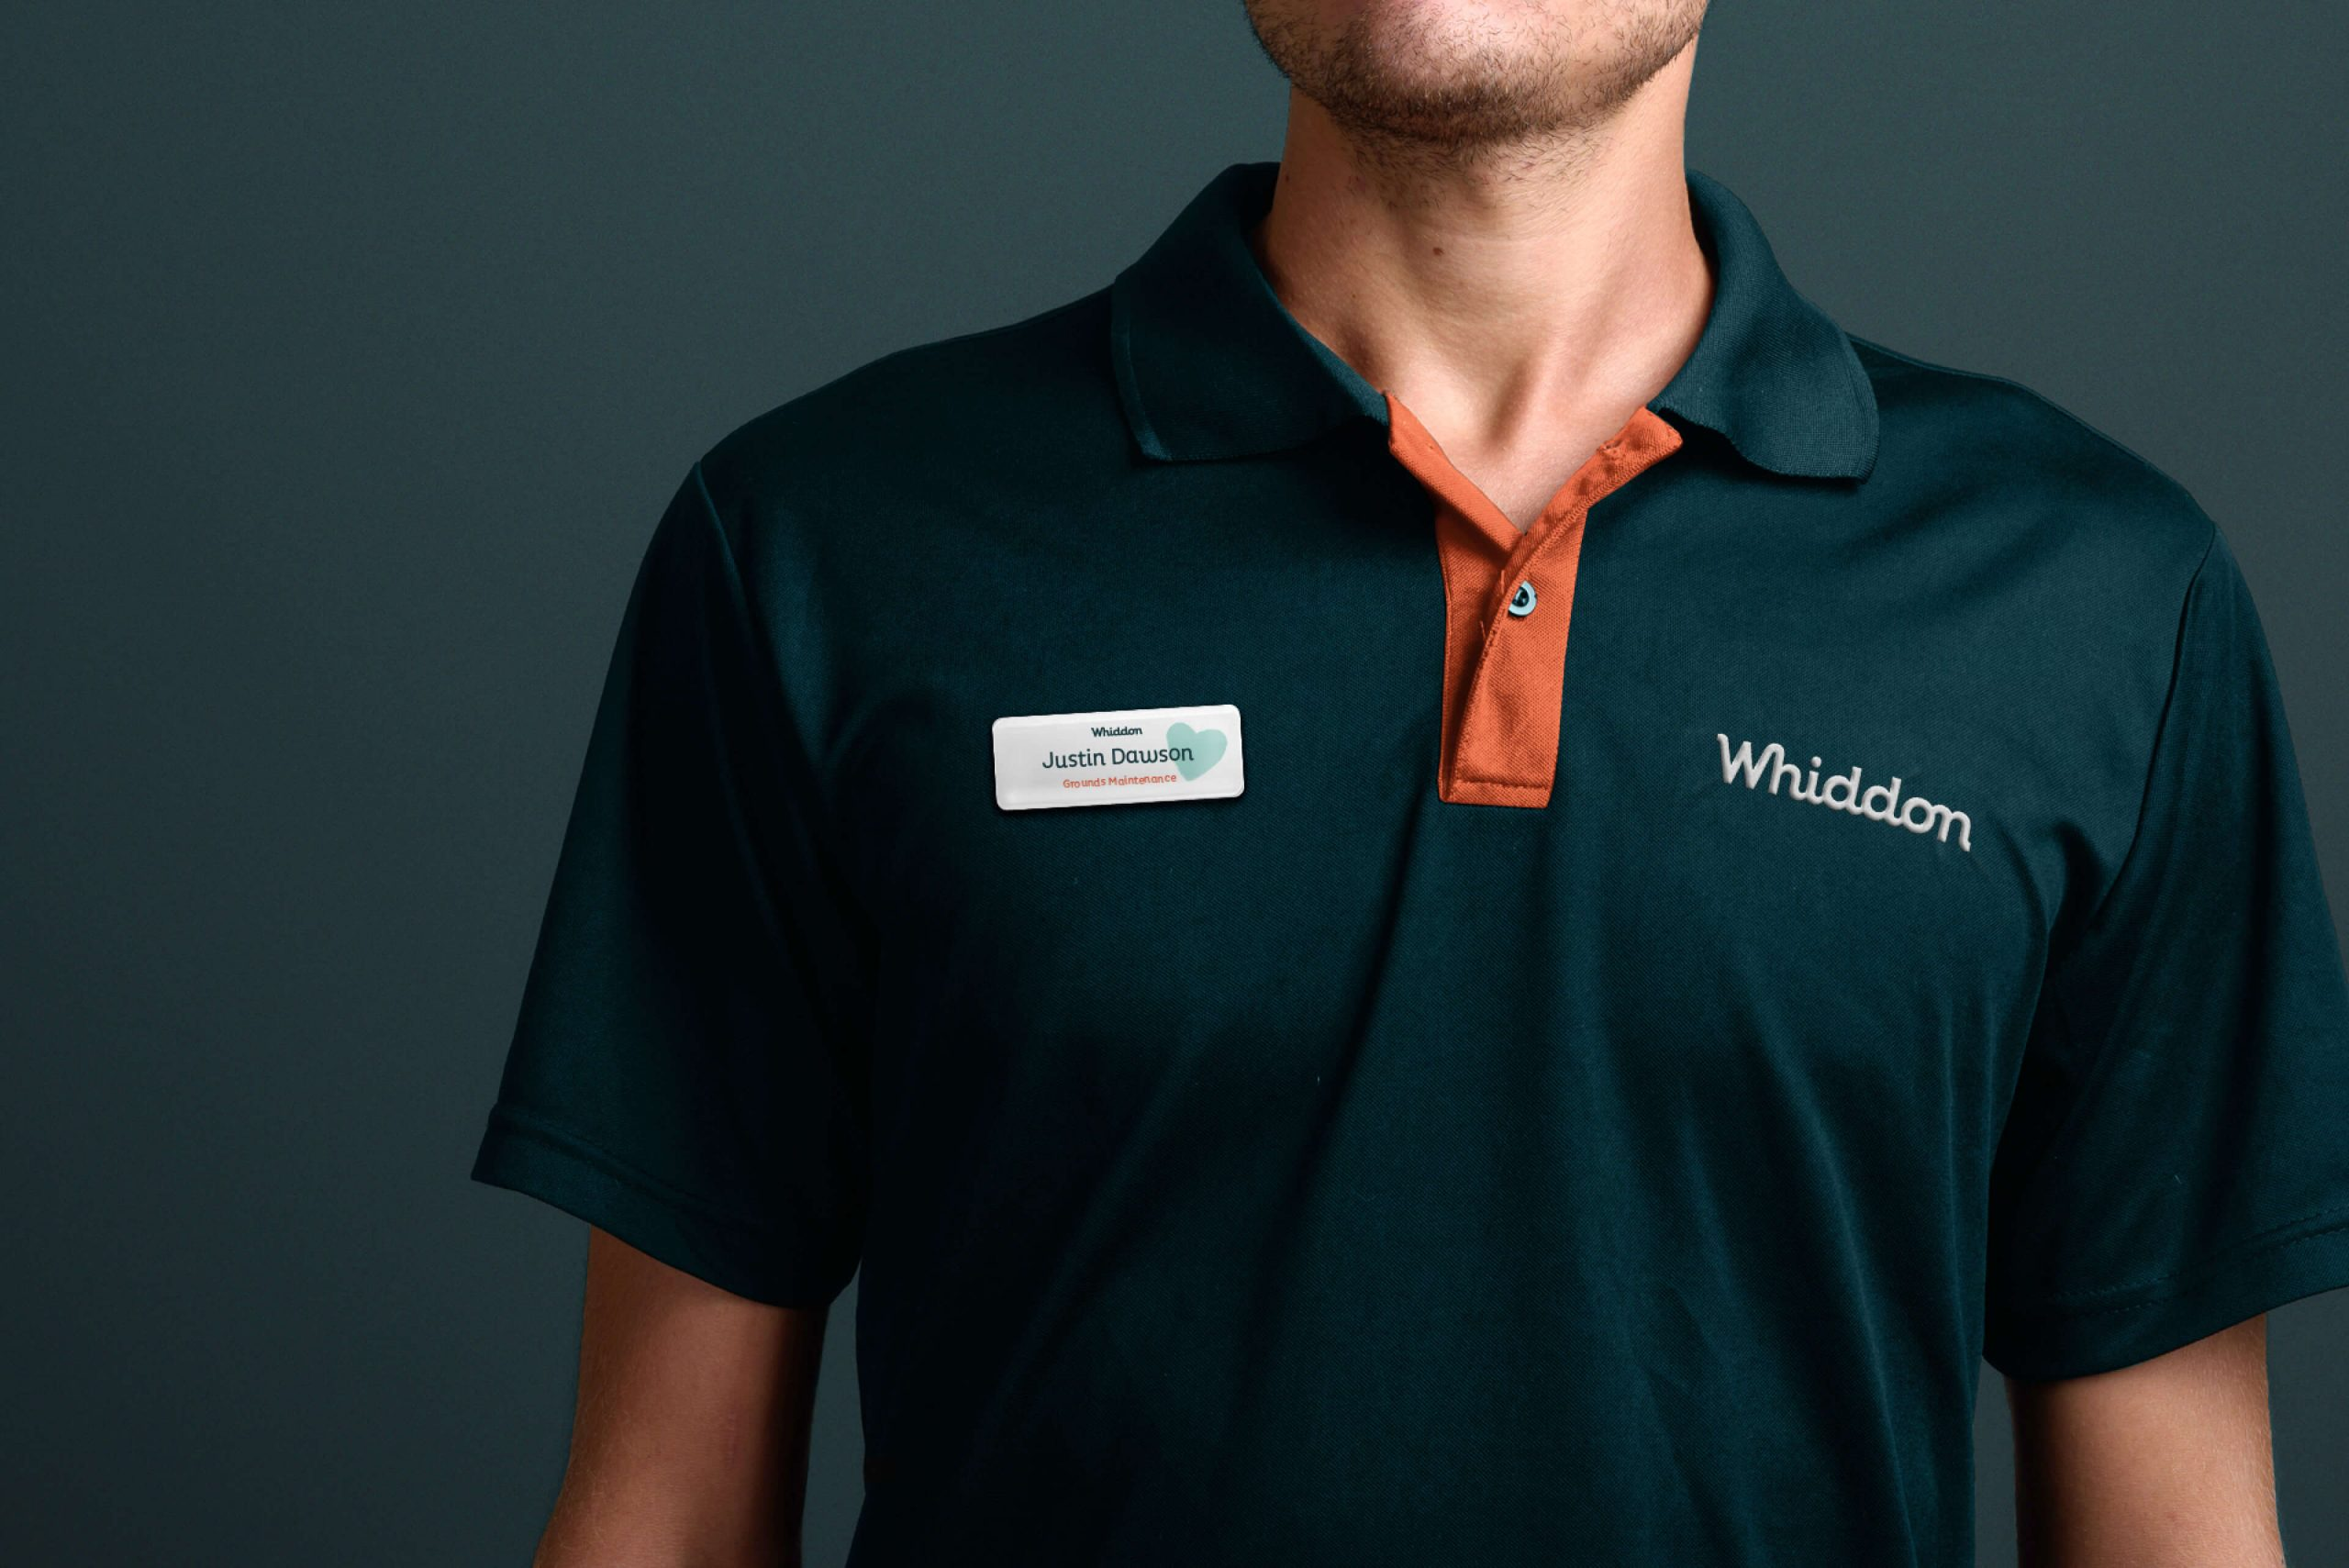 Whiddon Brand Refresh - Uniform and name badge